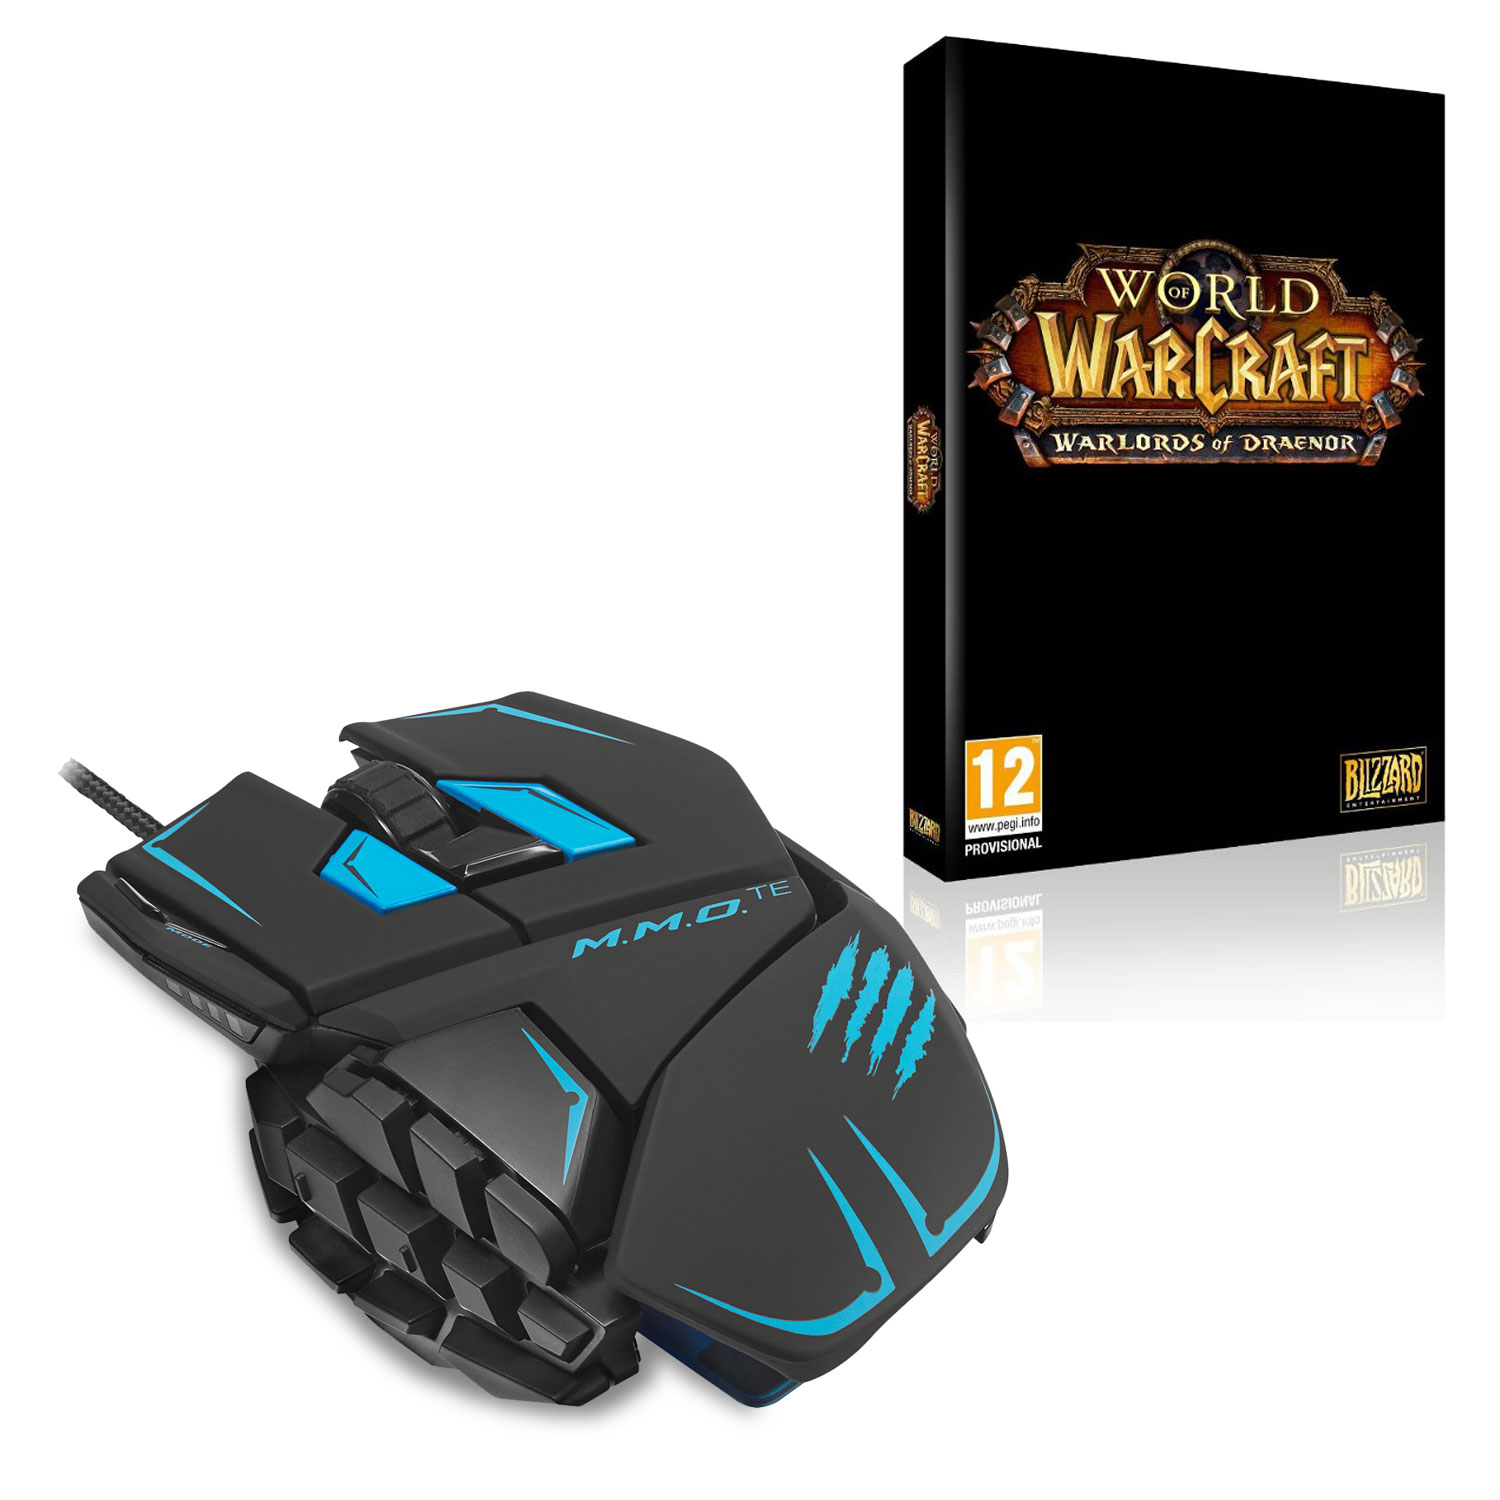 pointeur de souris world of warcraft